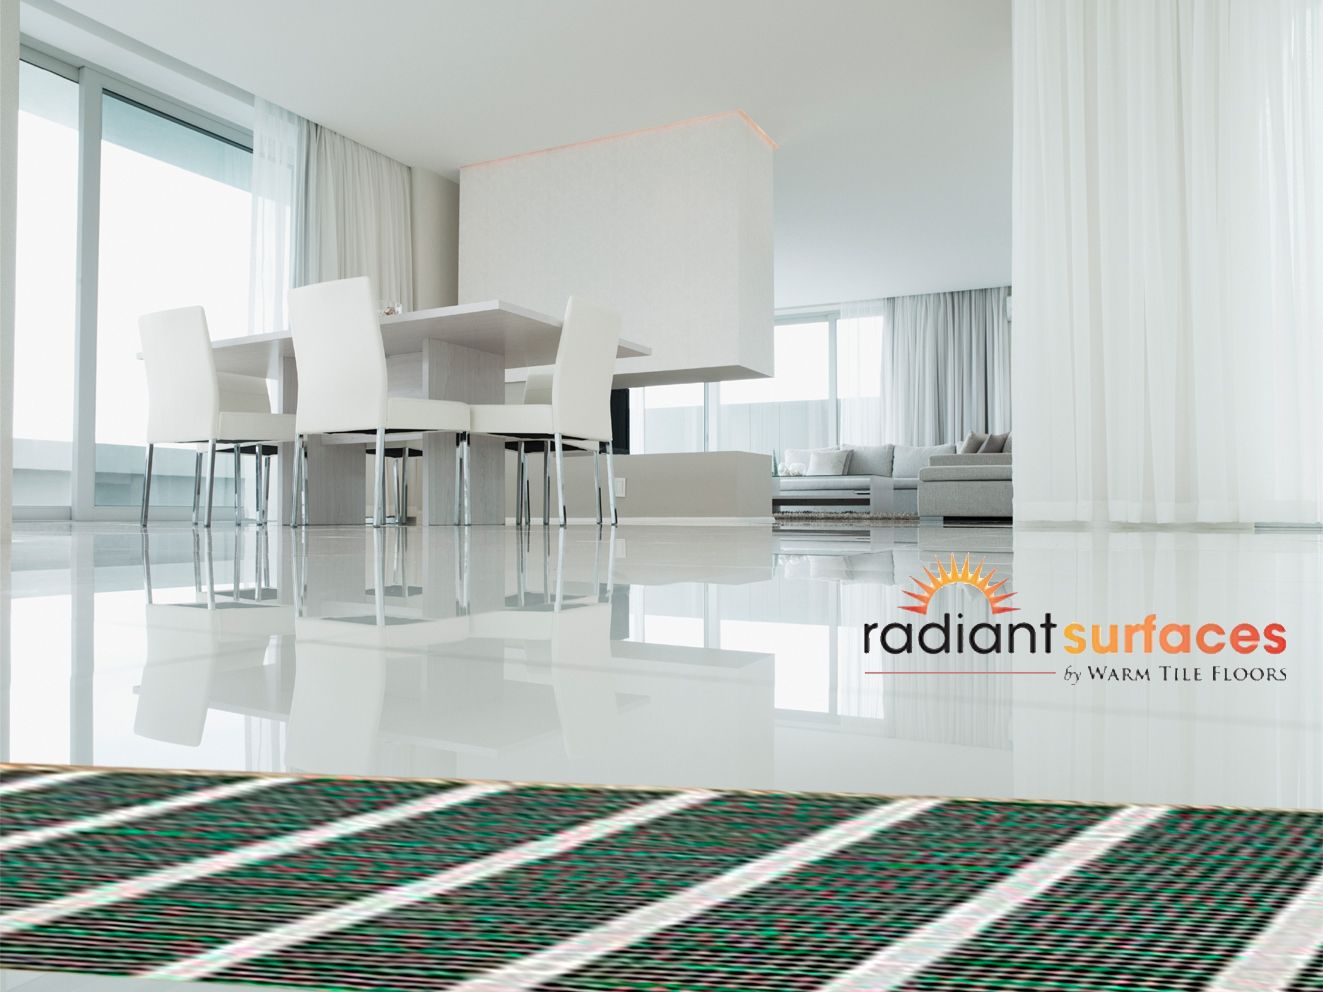 Radiant surfaces by warm tile floors provides warmth and comfort radiant surfaces by warm tile floors provides warmth and comfort for ceramic tiles warm dailygadgetfo Images